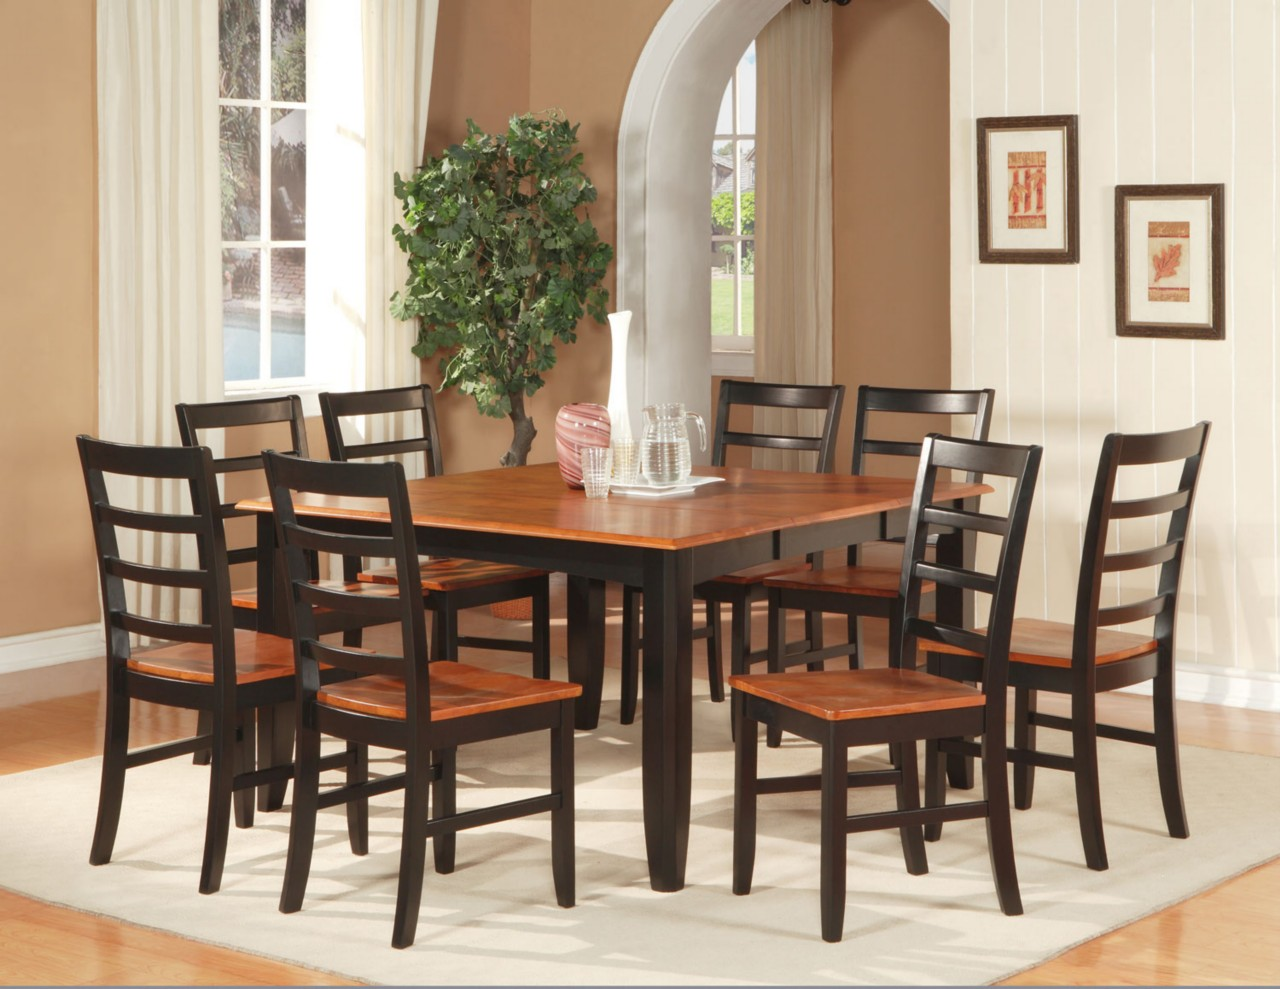 Outstanding Square Dining Room Table Sets 1280 x 989 · 216 kB · jpeg